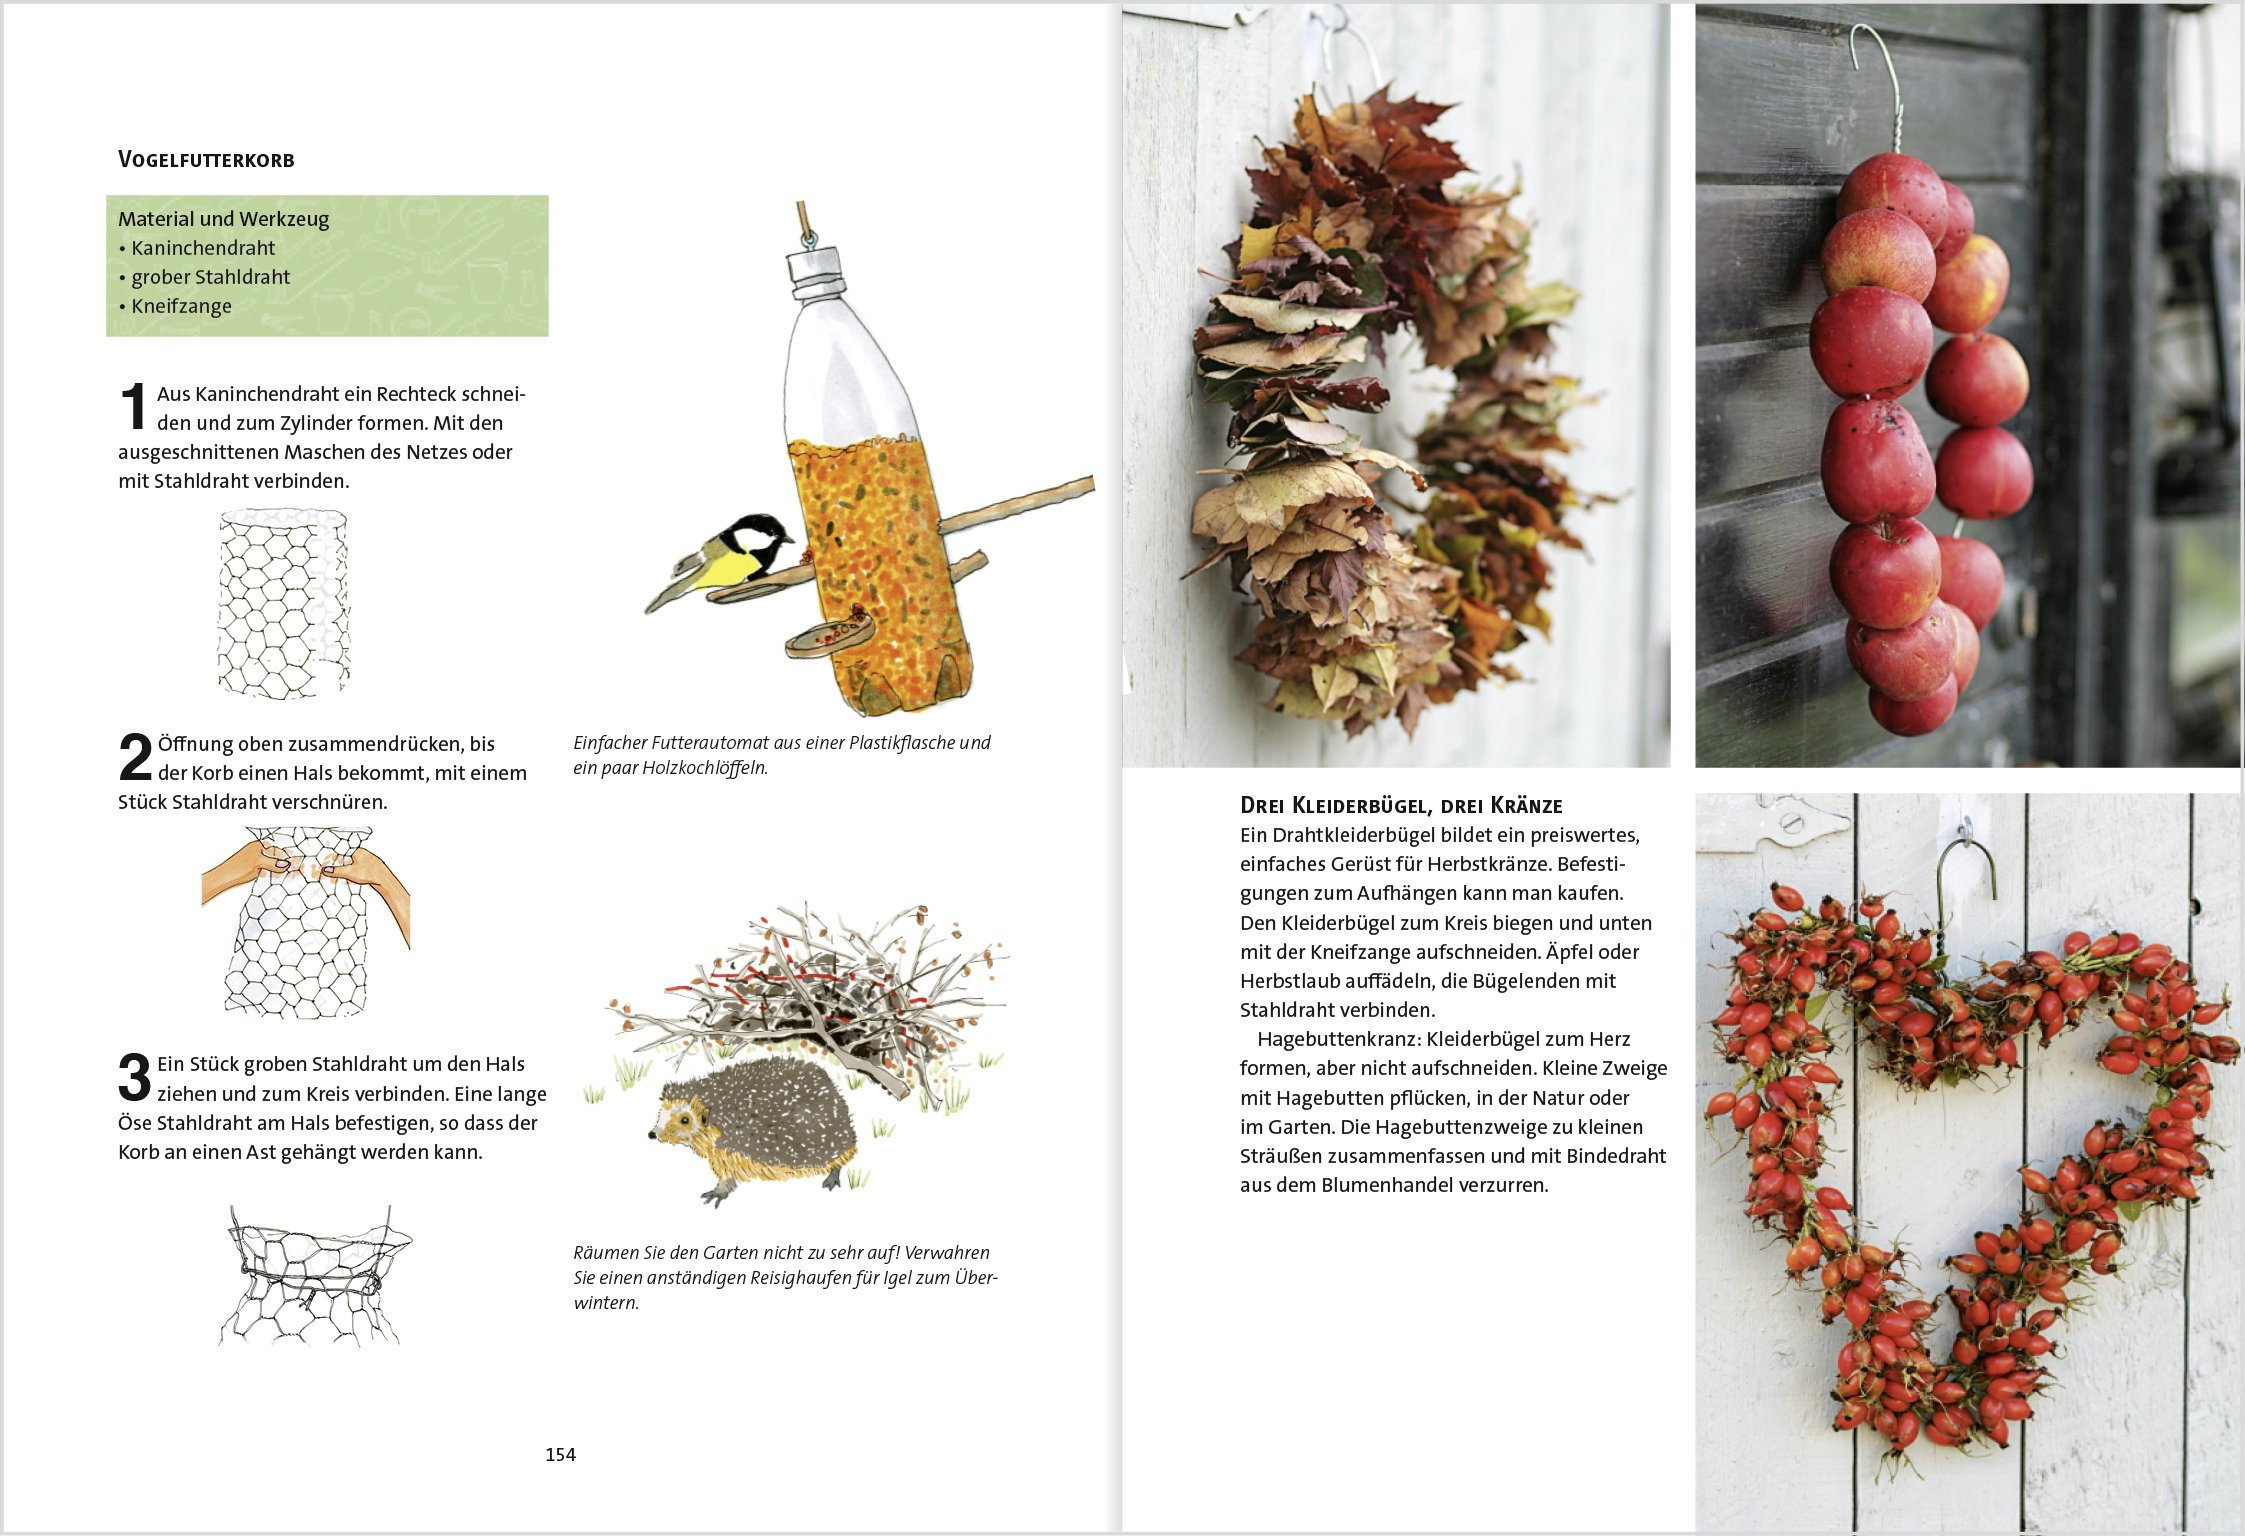 100 kreative Garten-Projekte: 9783784353517: Amazon.com: Books